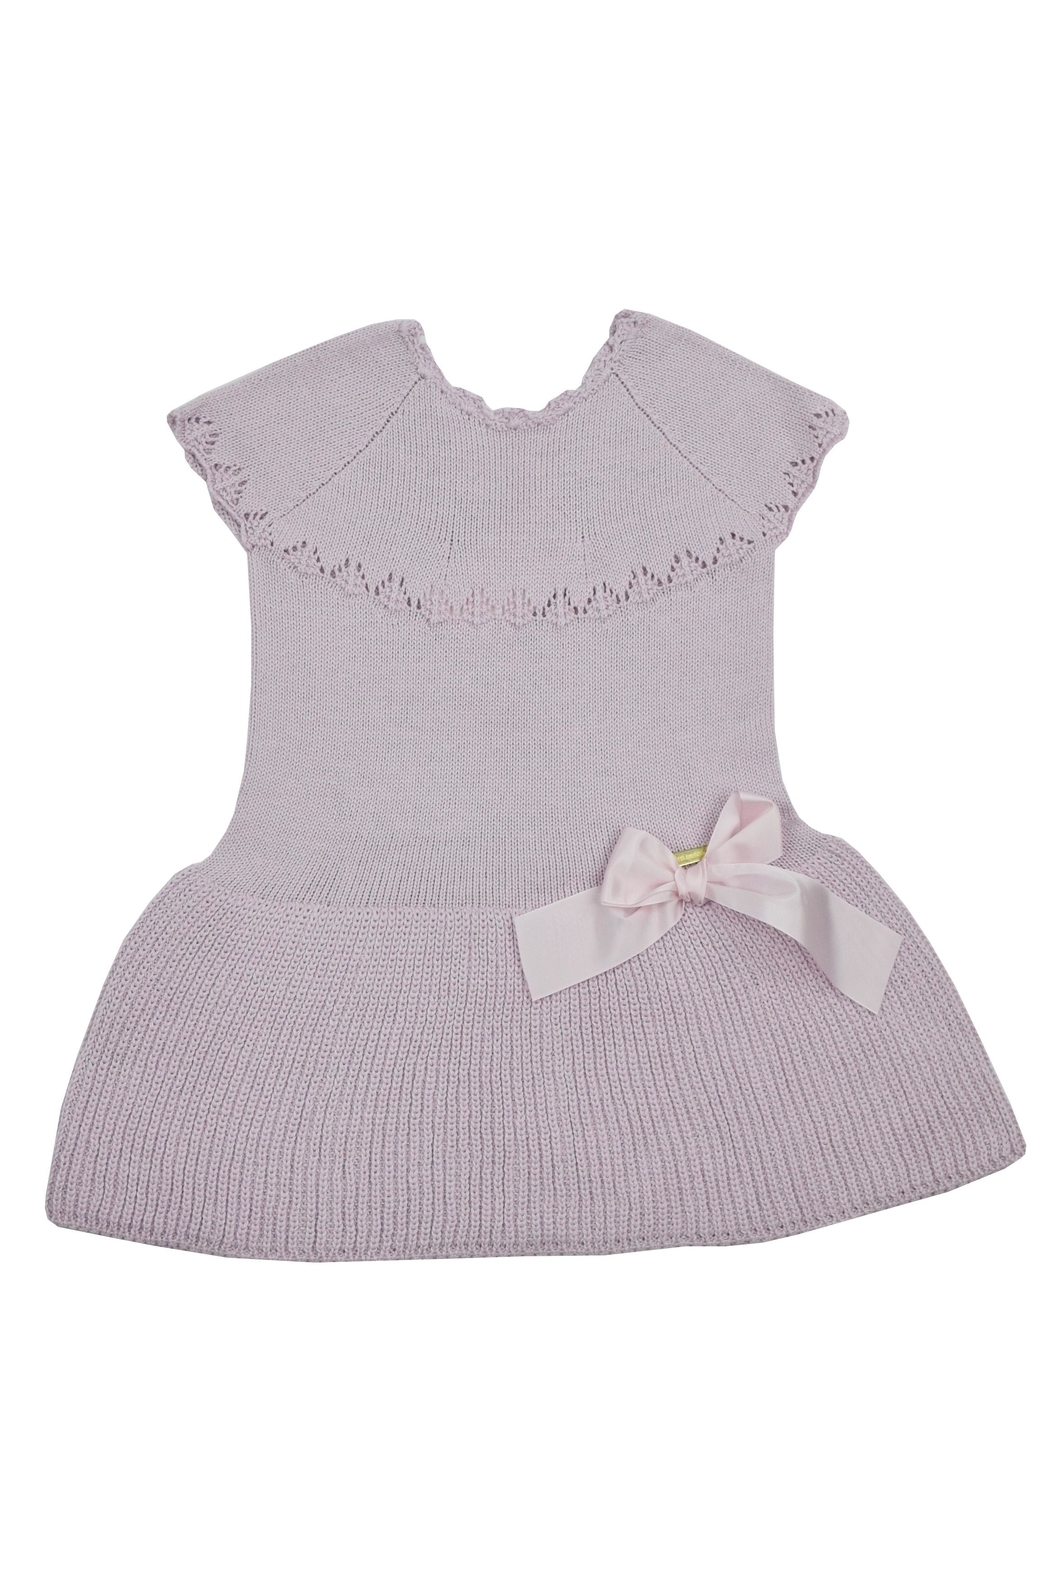 cesar blanco Lilac Knitted Dress - Main Image